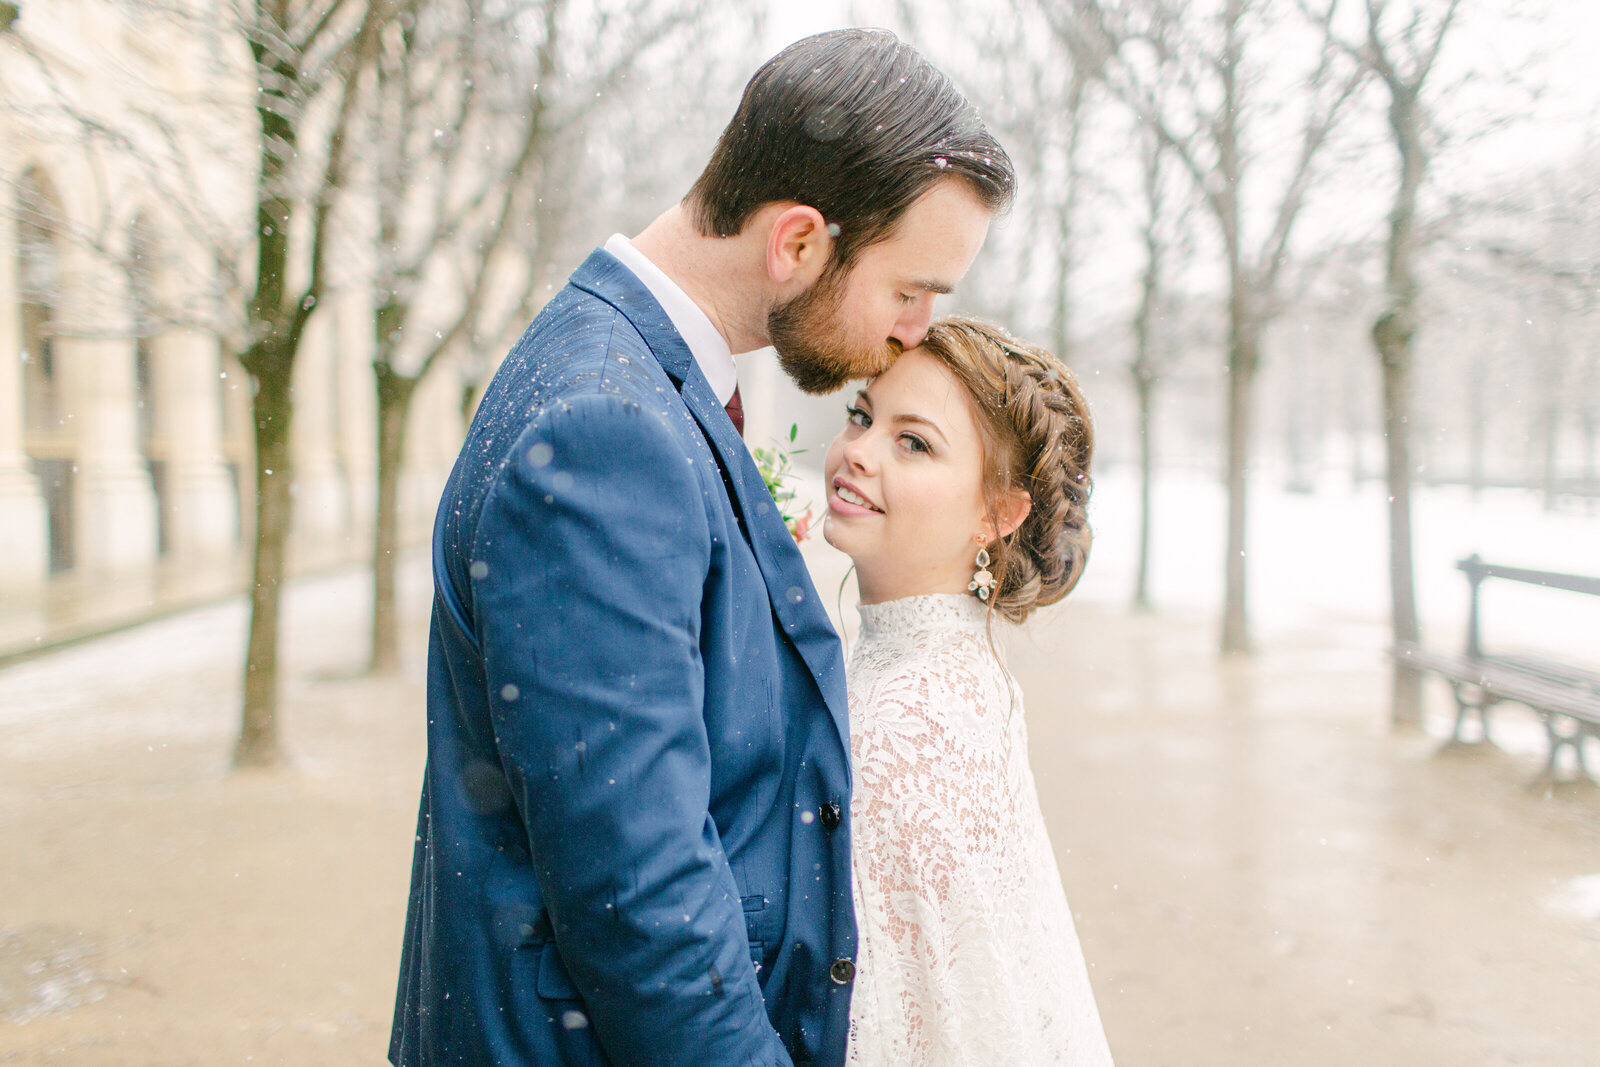 bride looking at camera as the groom kisses her forehead and snow falls around them